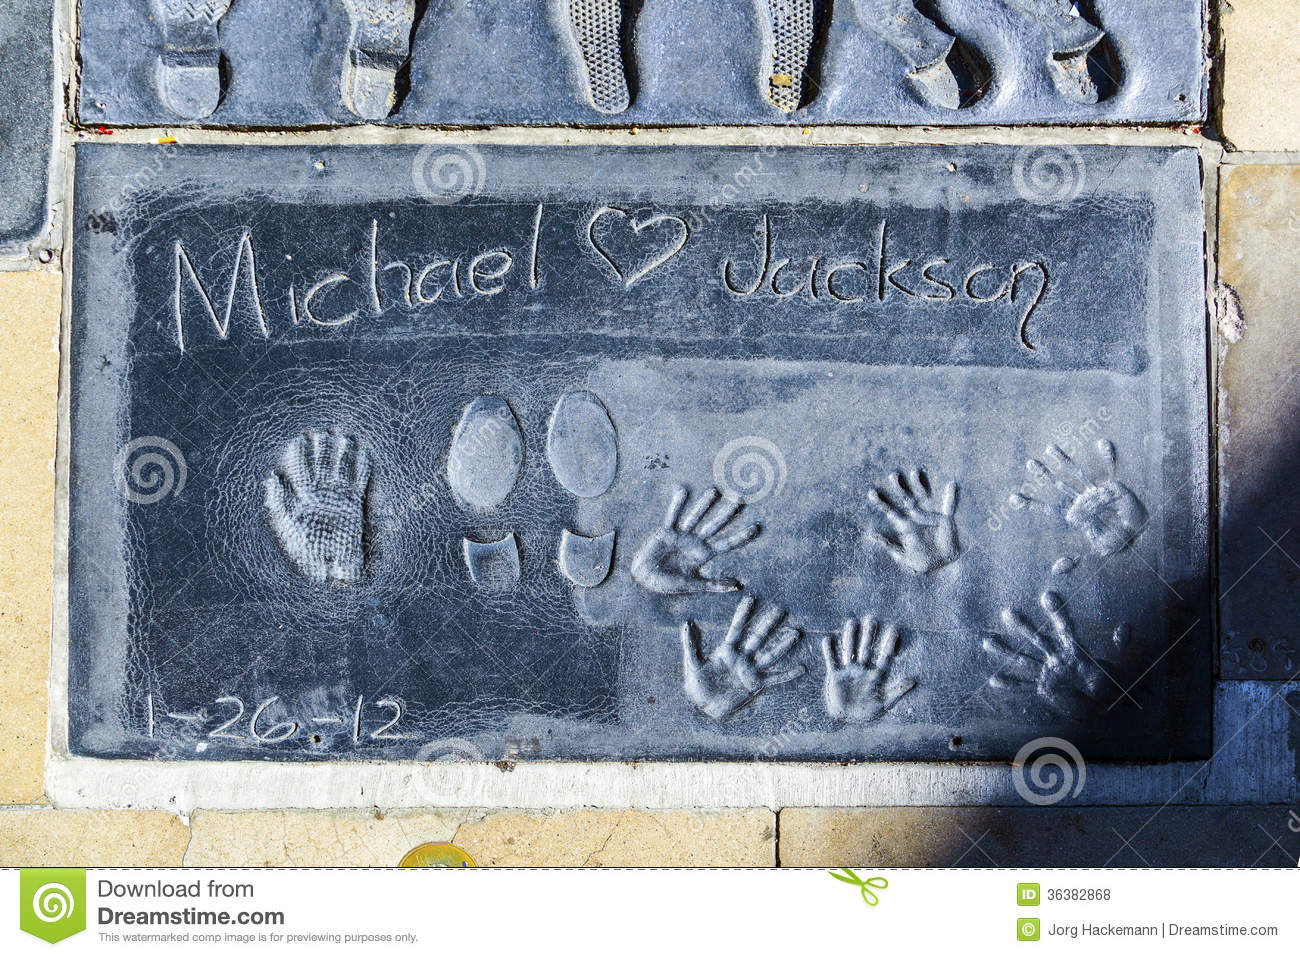 Footprints and Handprints of Hollywood Stars and - Yelp